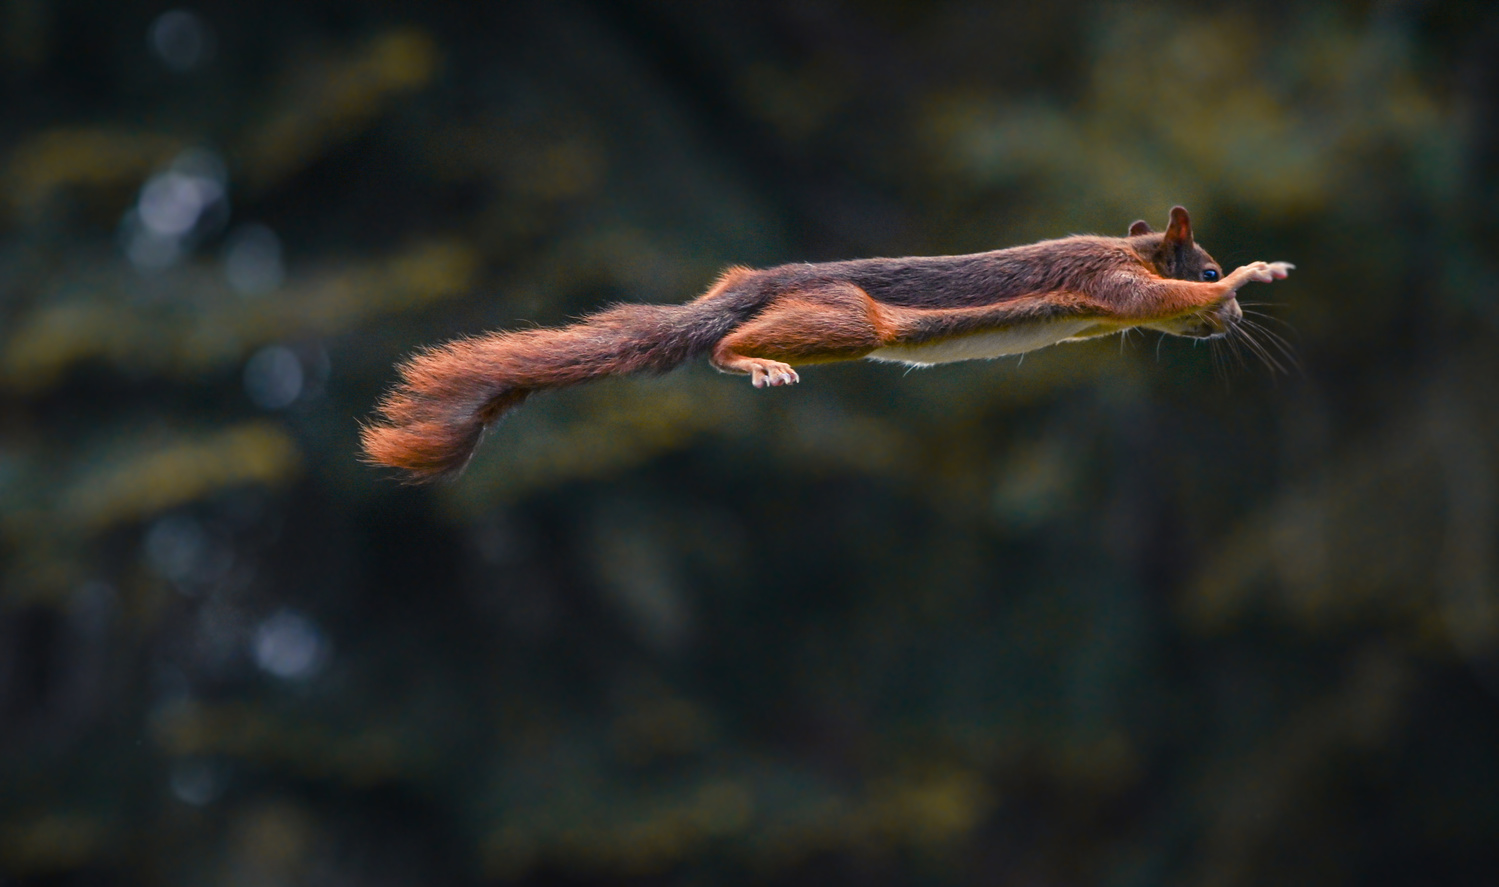 A squirrel jumping